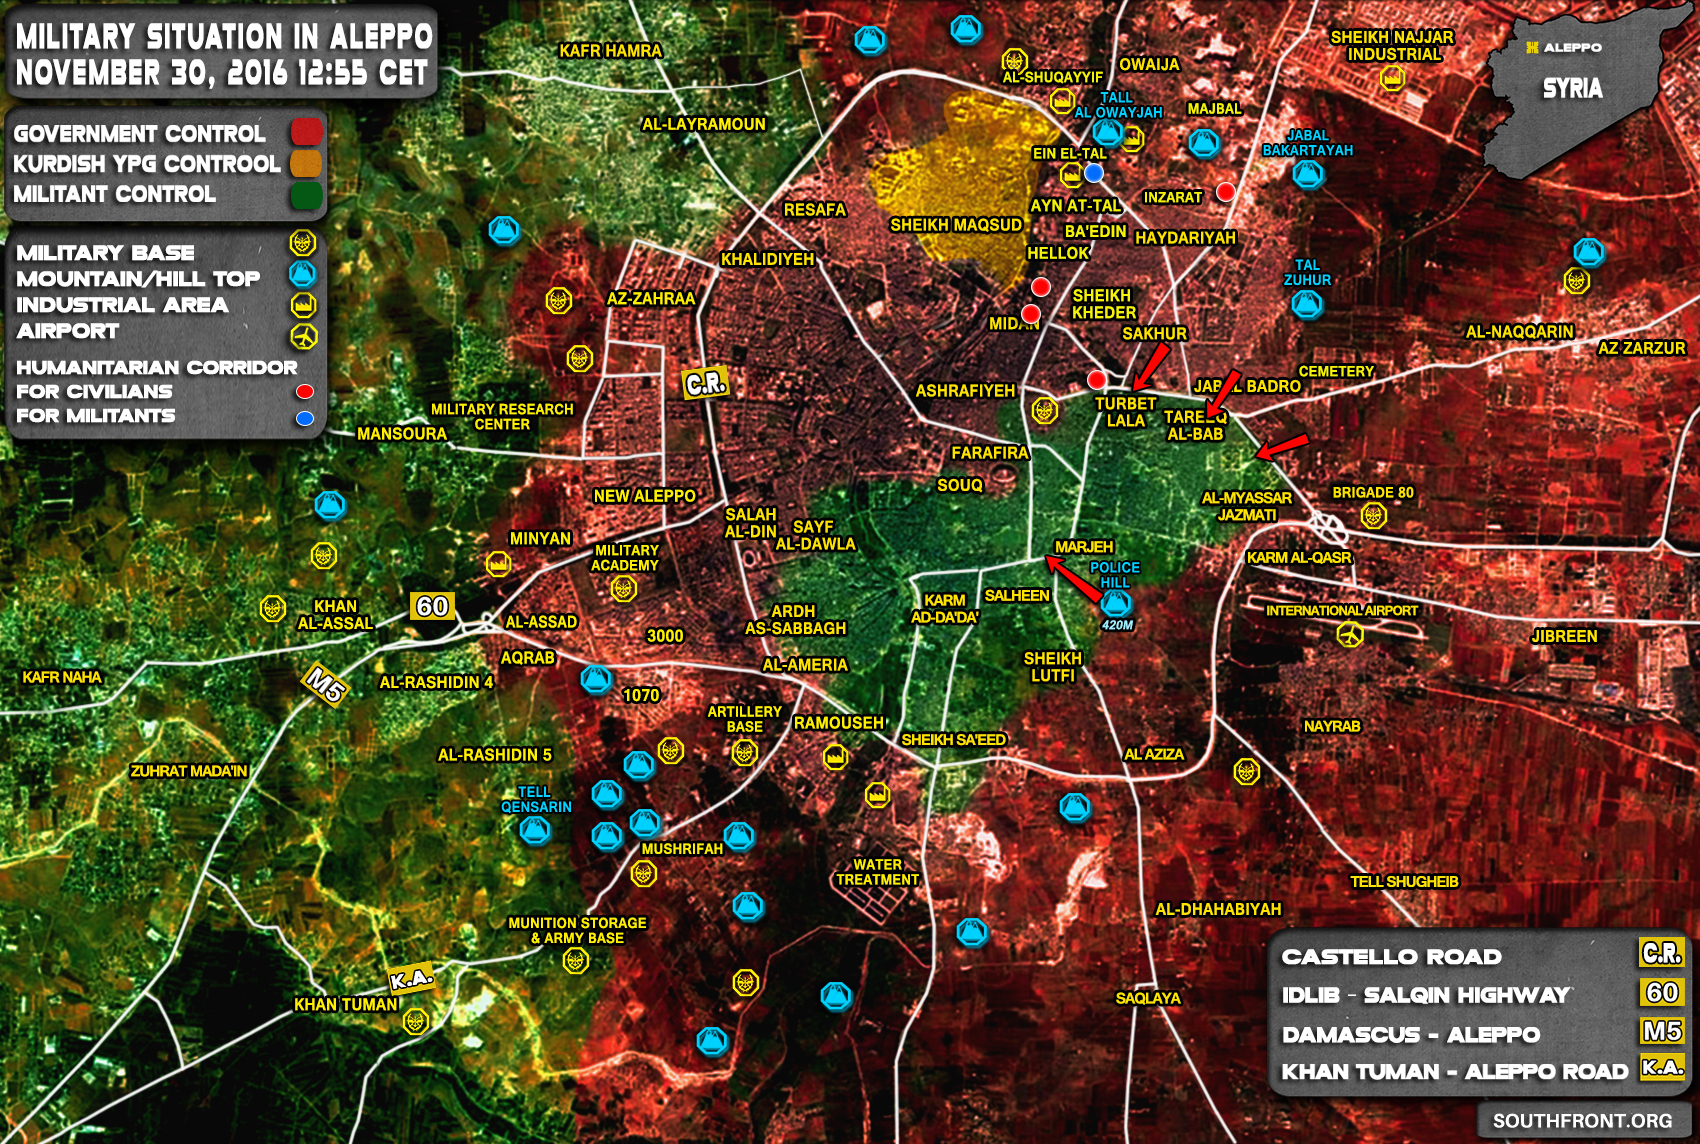 Overview of Military Situation in Aleppo City on November 30, 2016